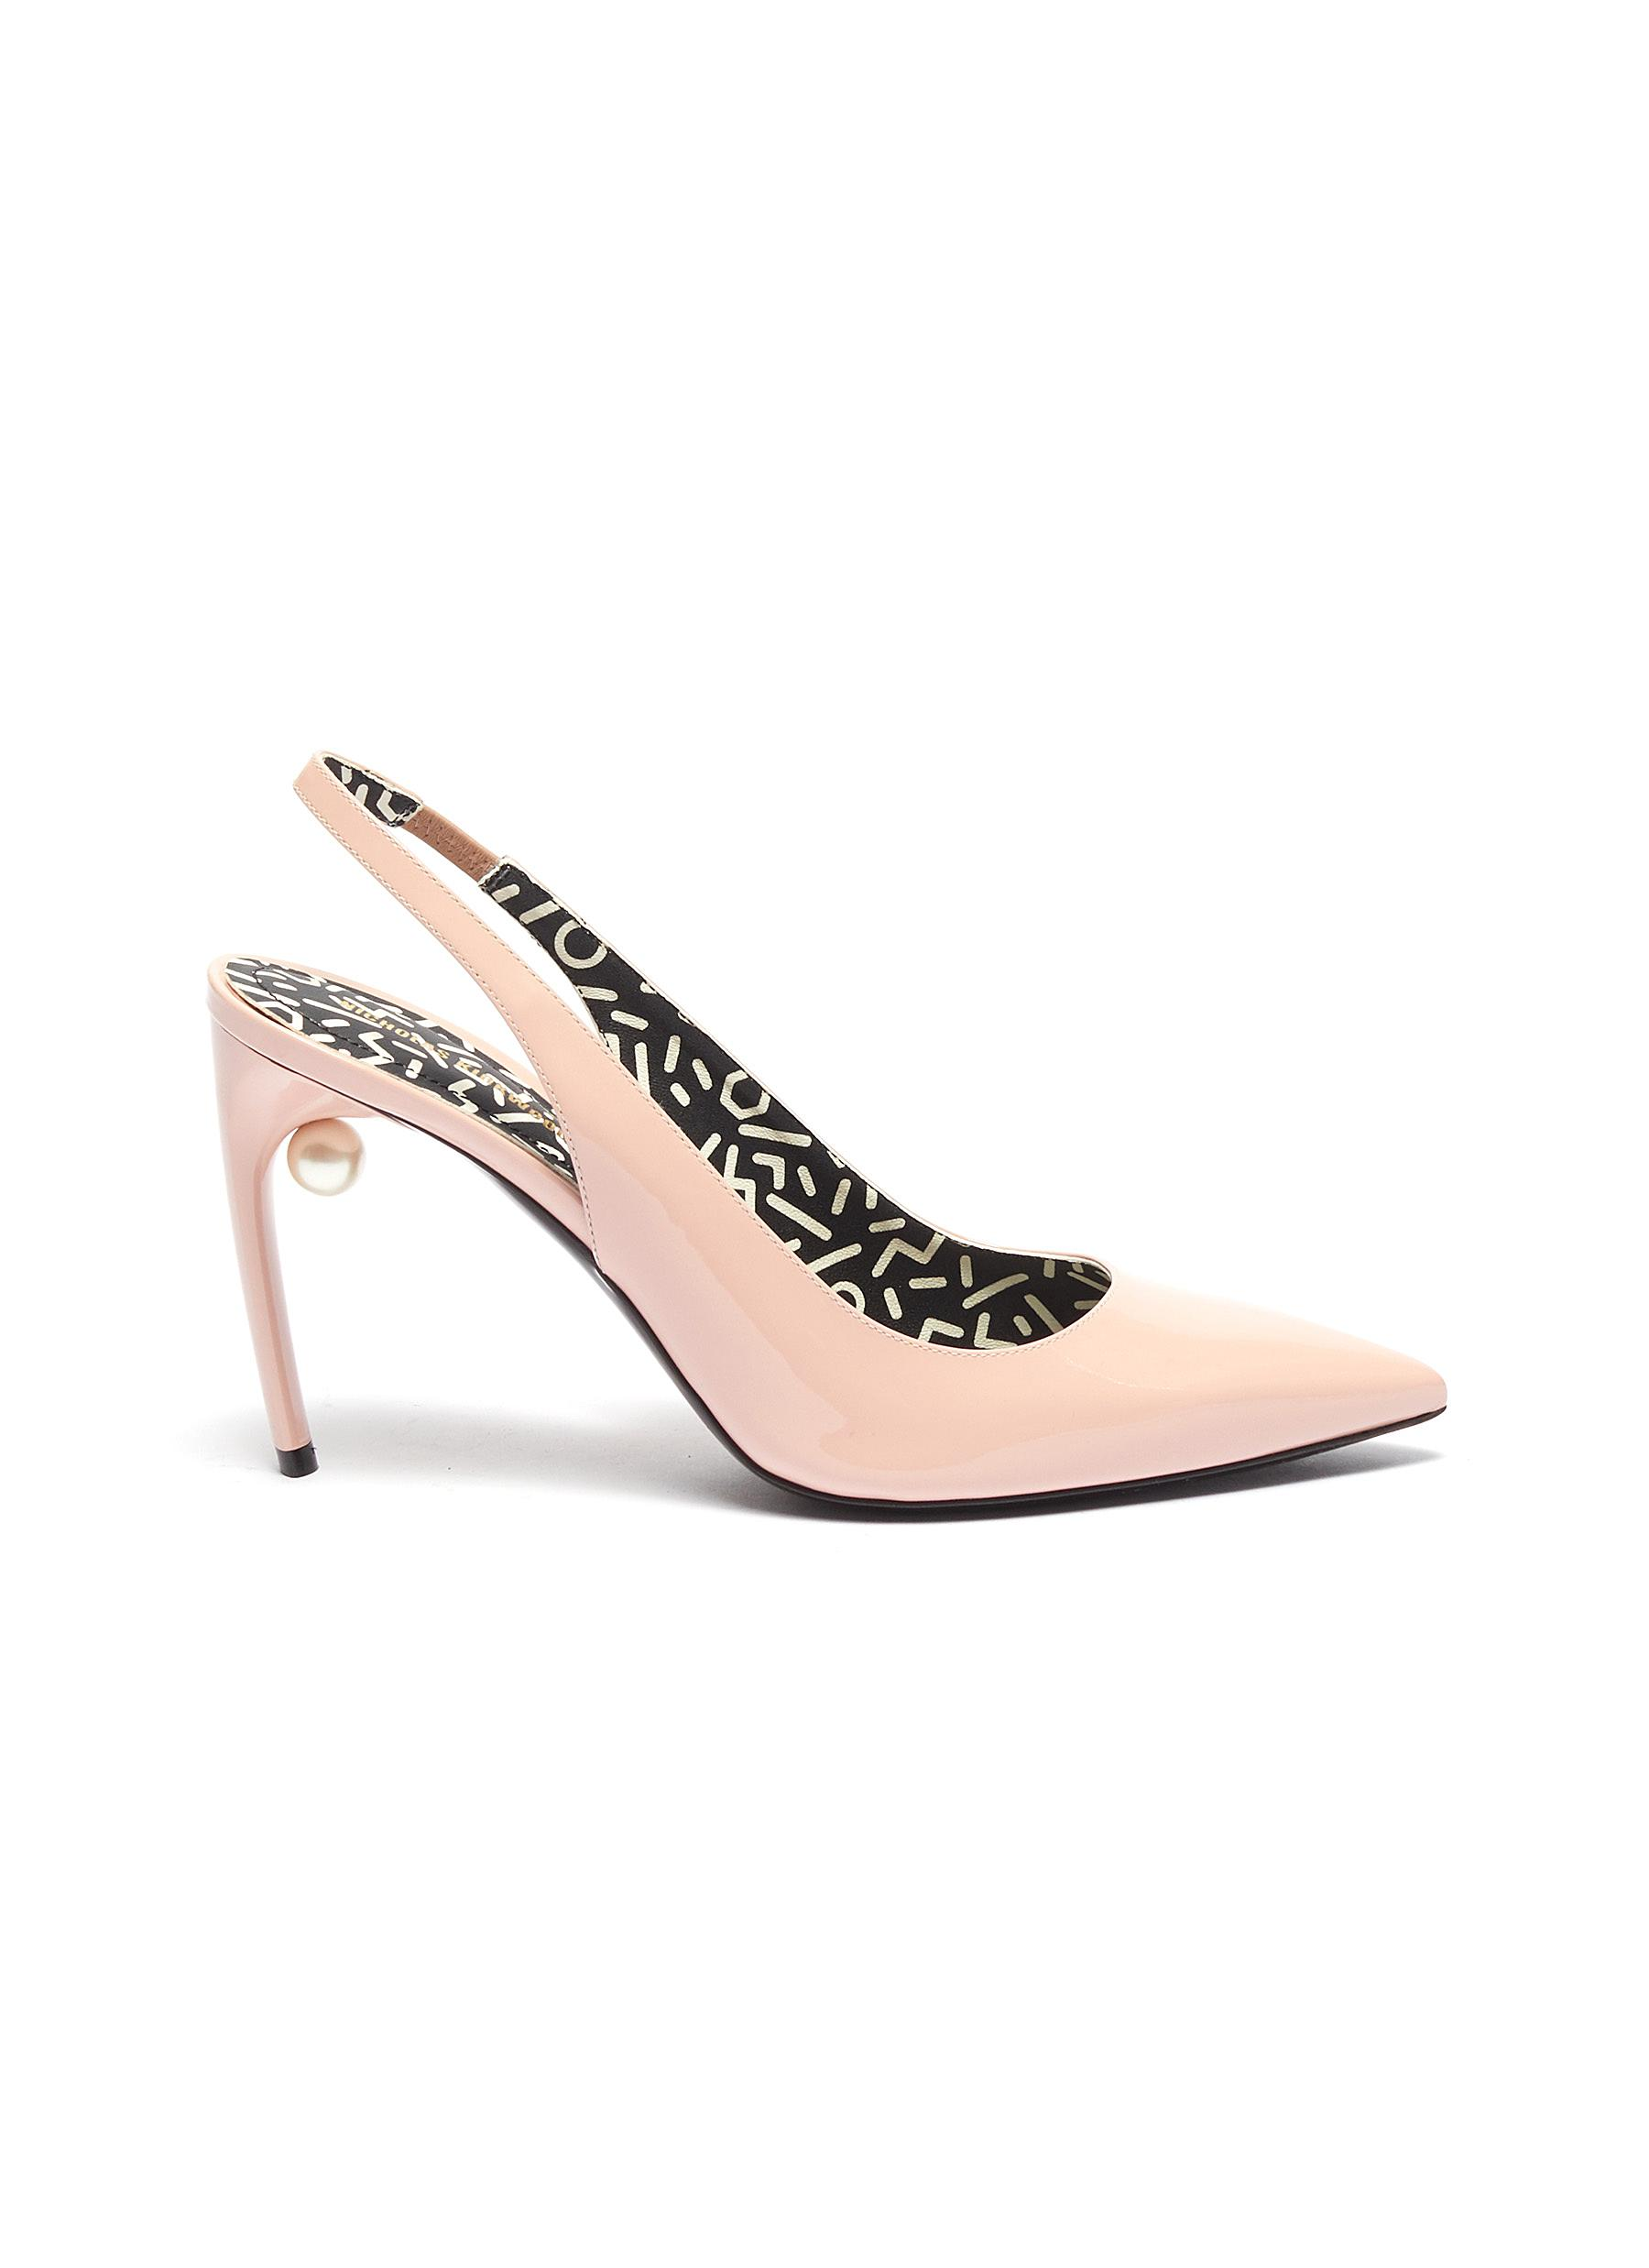 Mia faux pearl patent leather slingback pumps by Nicholas Kirkwood